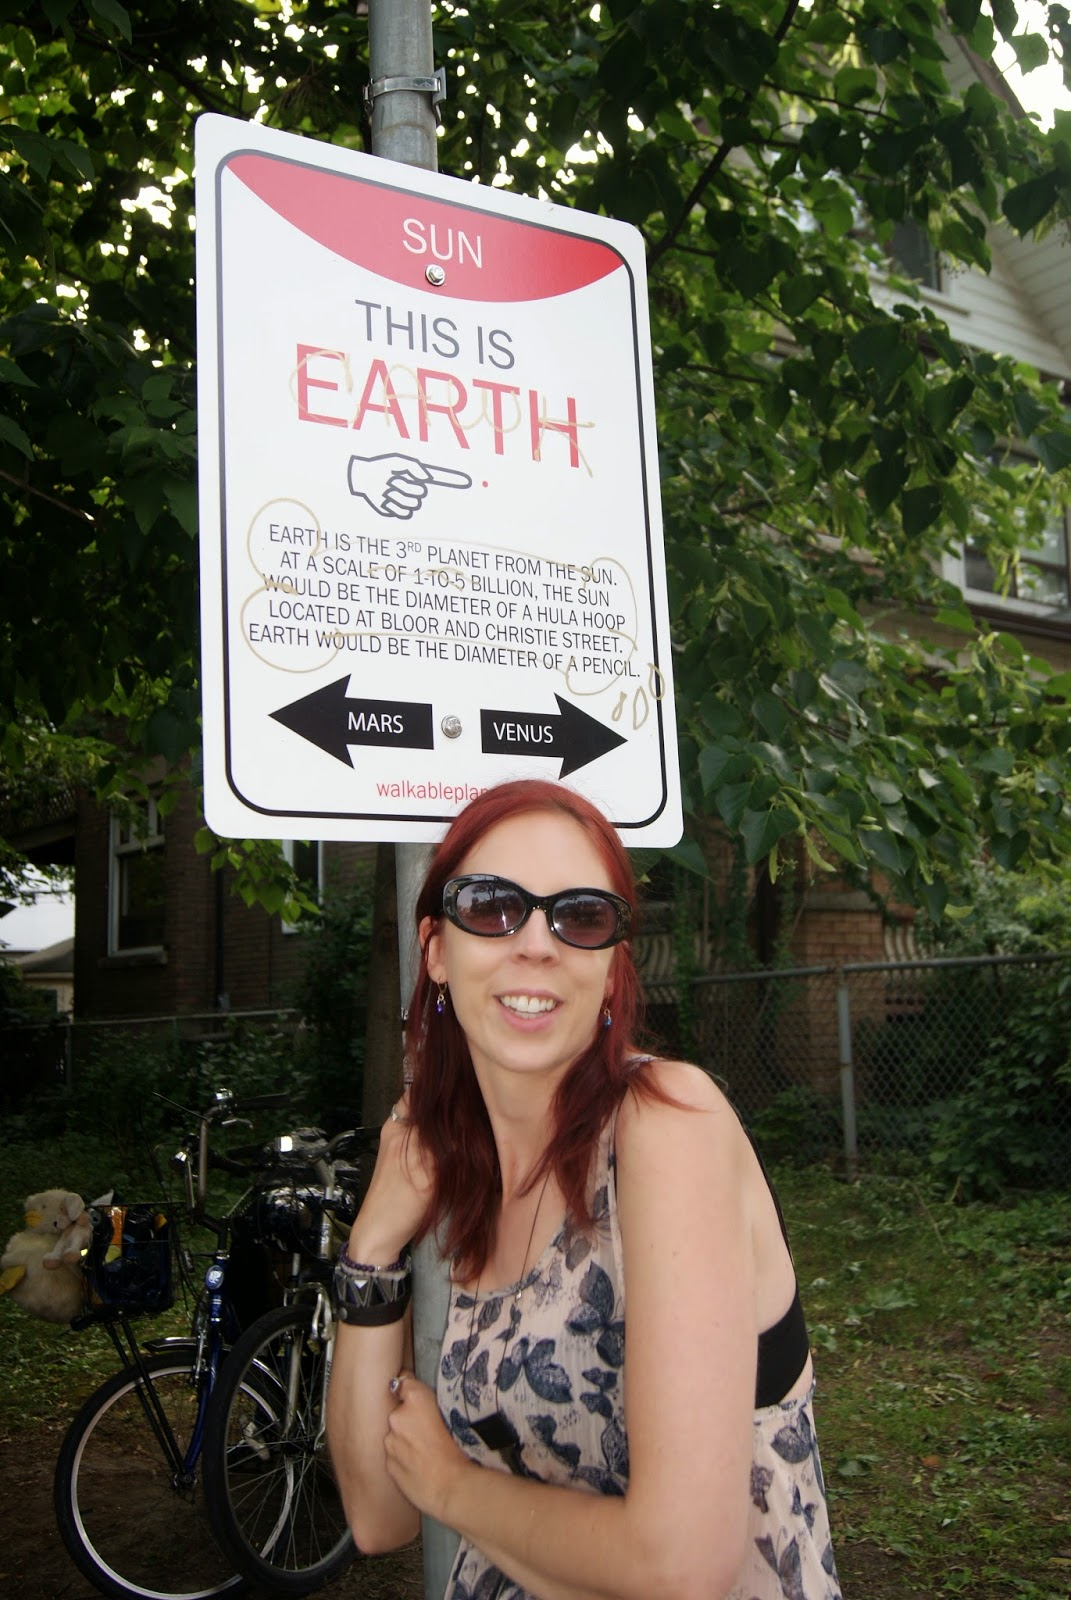 Earth Wayfinding Sign from Walkable Planets scale solar system by Jode Roberts in Toronto, Public, Installation, Community, Project, Intervention, Explore, Grace Street, Gore Vale Avenue, Jane's Walk, 100-in1 Day, Ontario, Canada, Culture, Lifestyle, Galaxy, Art, Artist